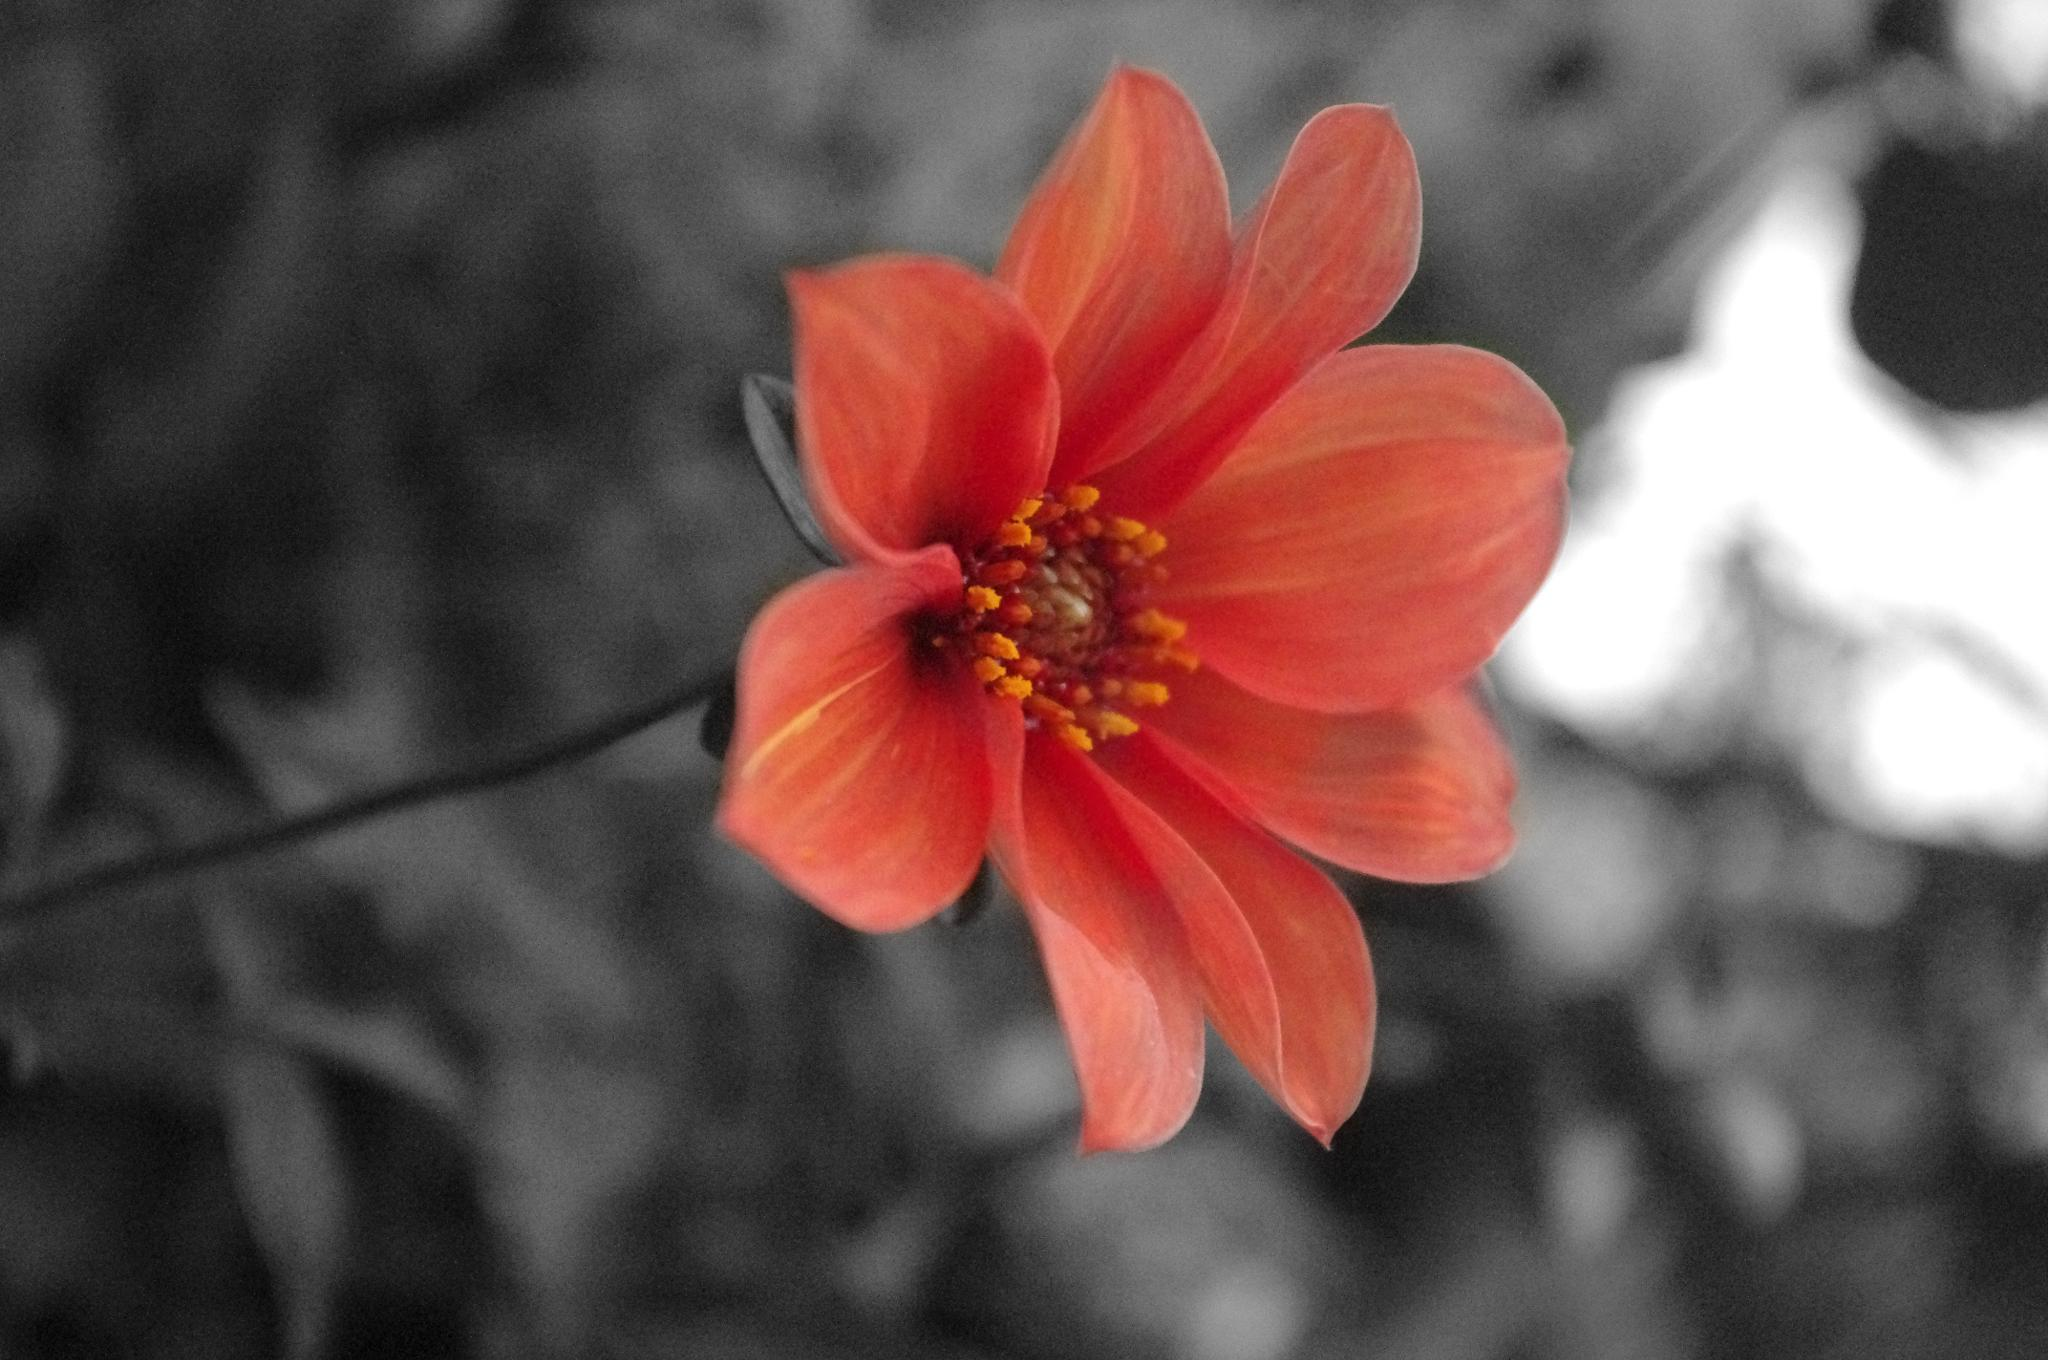 Lonely Flower by DanielleParry